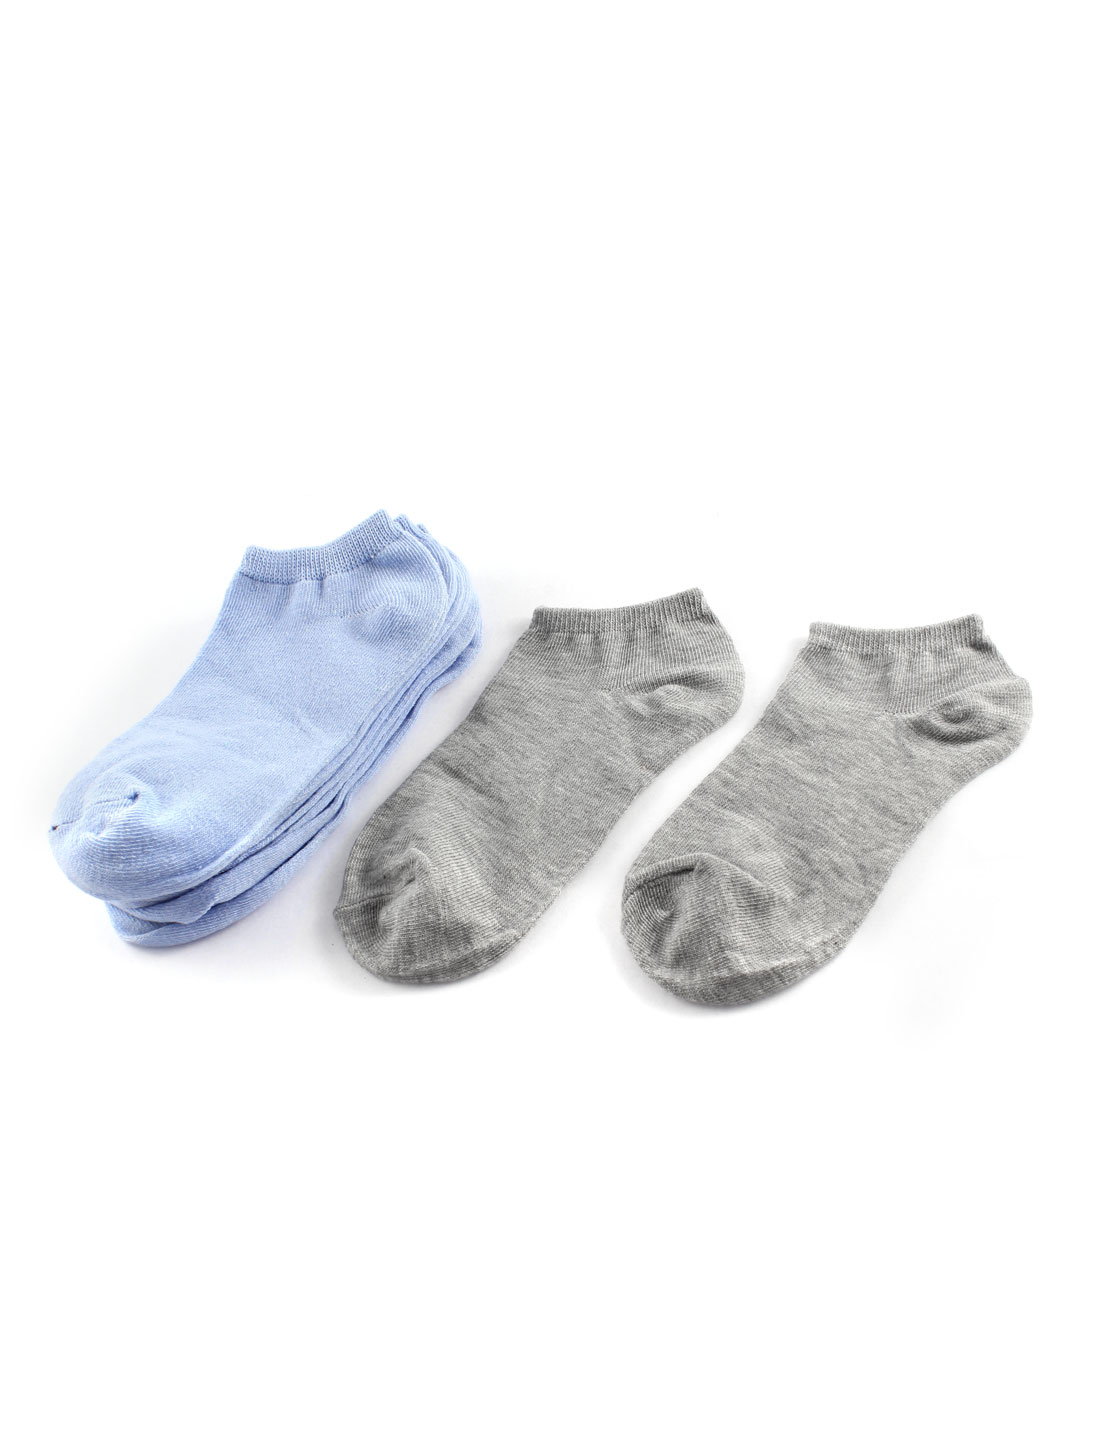 5 Pairs Pure Blue Gray Elastic Cotton Blends Cuff Short Low Cut Socks for Lady